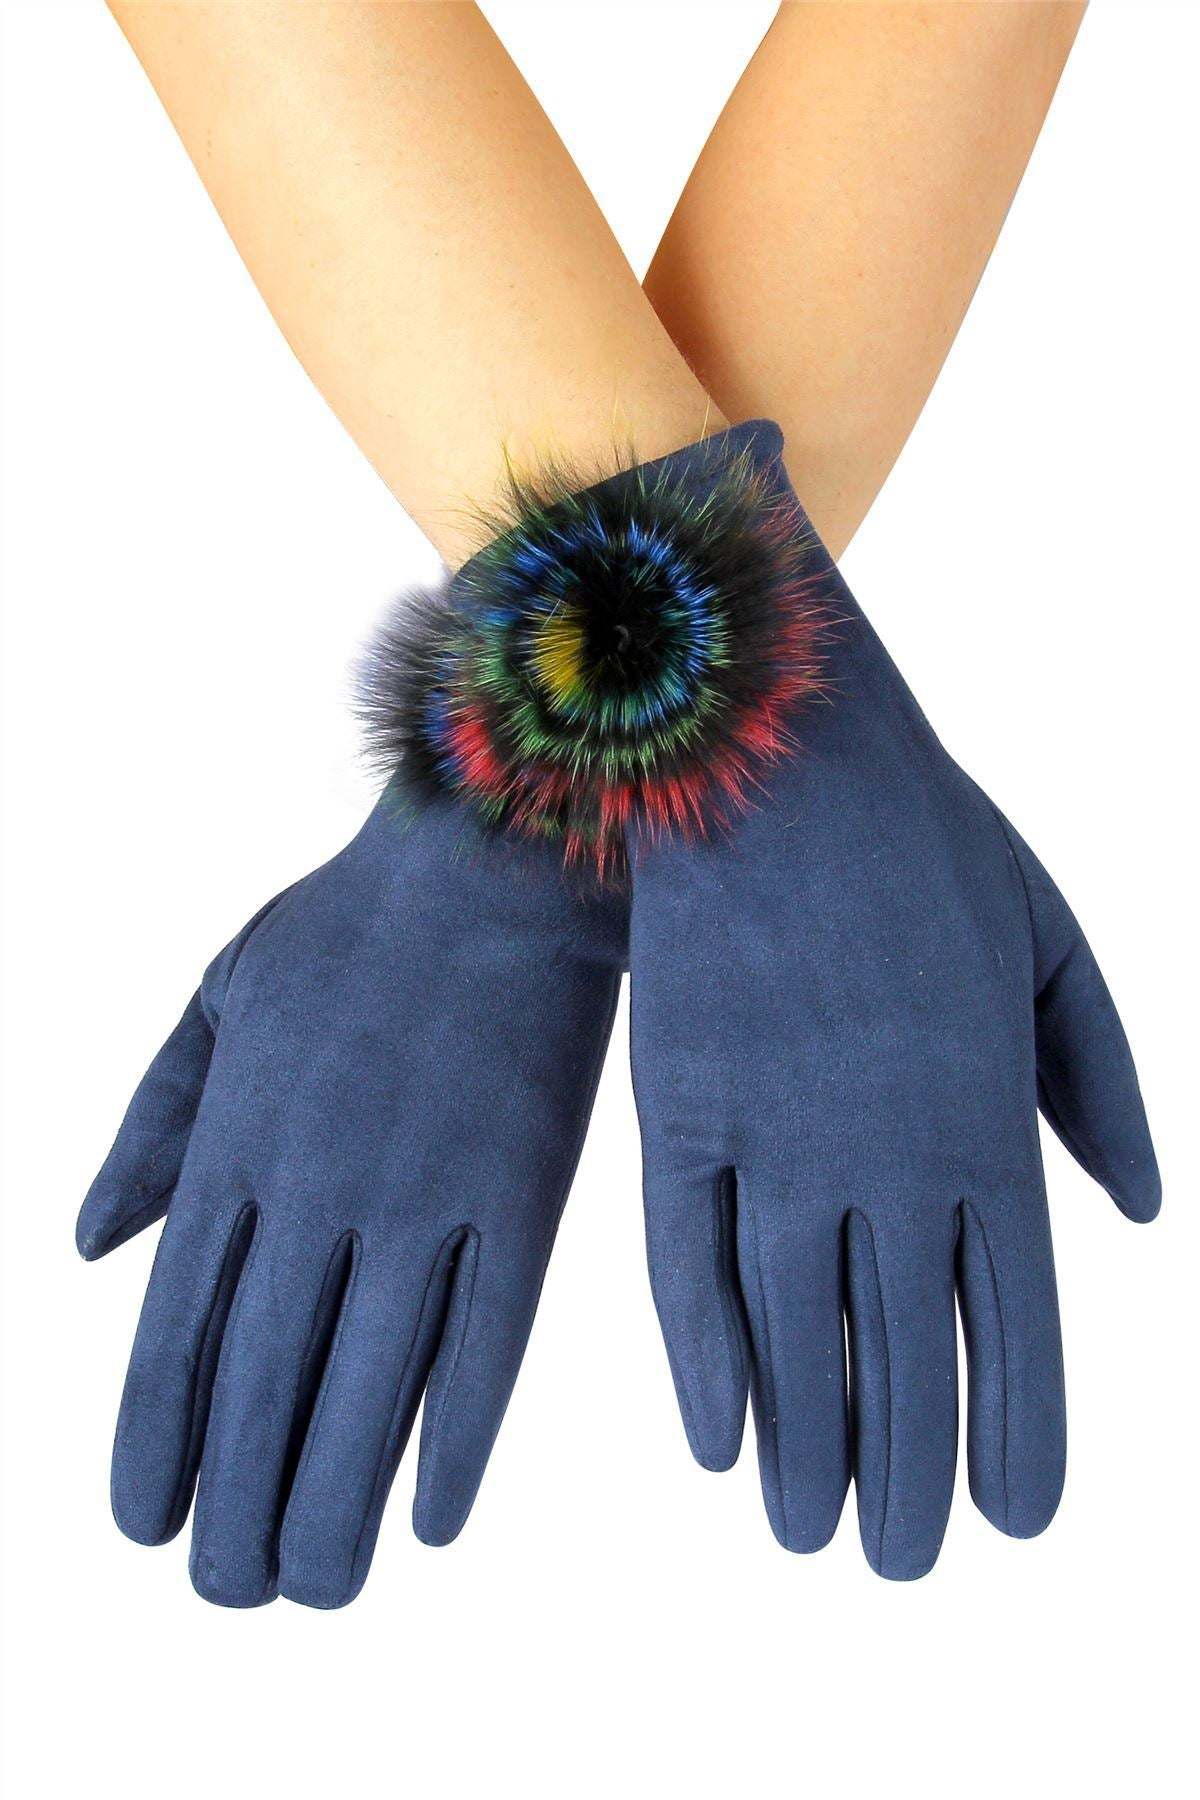 X Rainbow Spiral Real Fur Mix Pom Pom Touchscreen Gloves- NAVY BLUE  Woman Gloves